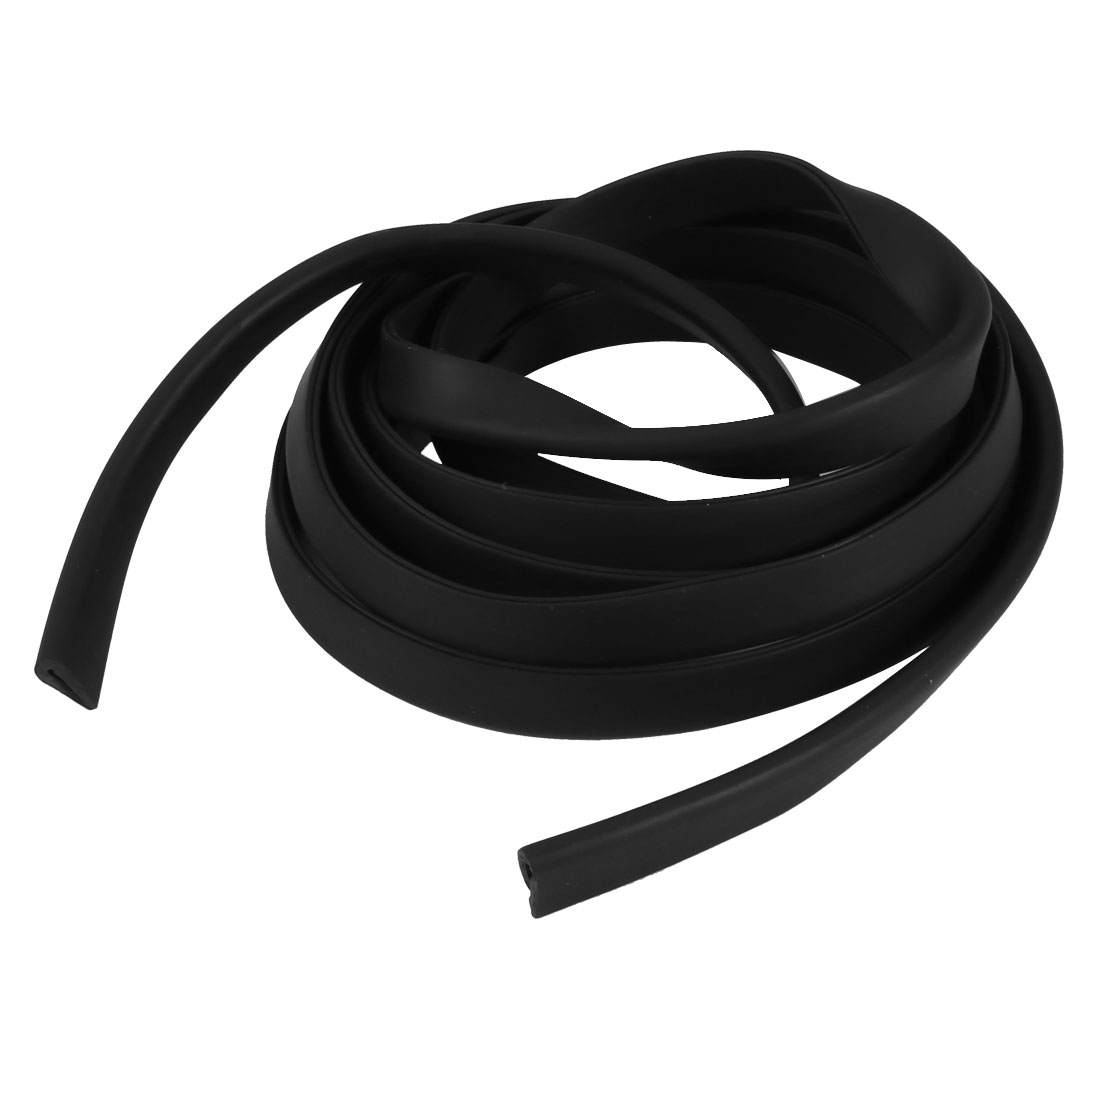 2M Length 1mm Groove Width 10mm Height Rubber Hollow Air Sealed Seal Strip Black